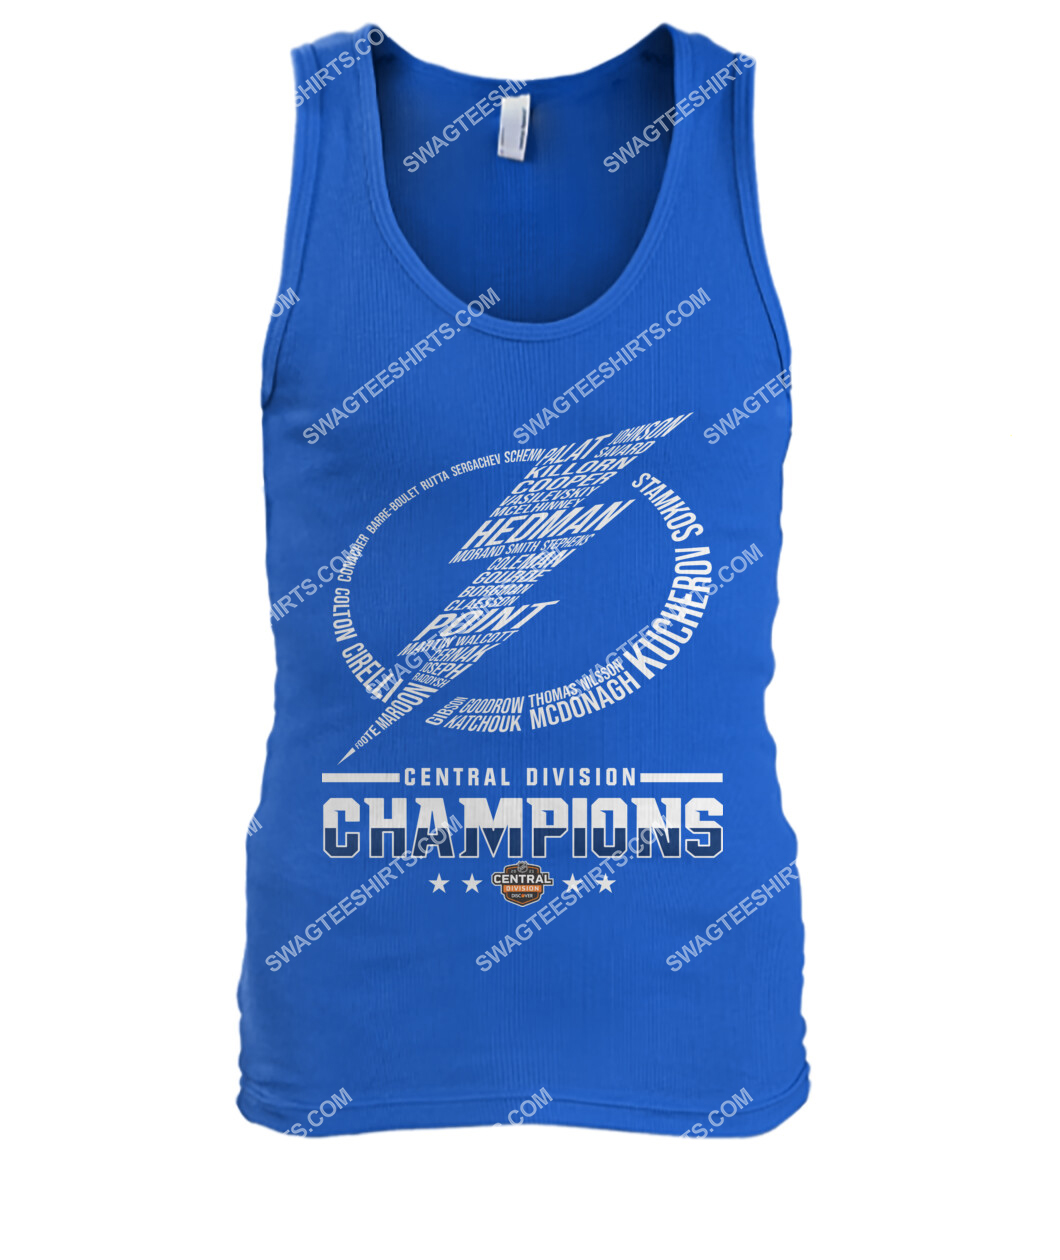 2021 central division champions tampa bay lightning tank top 1